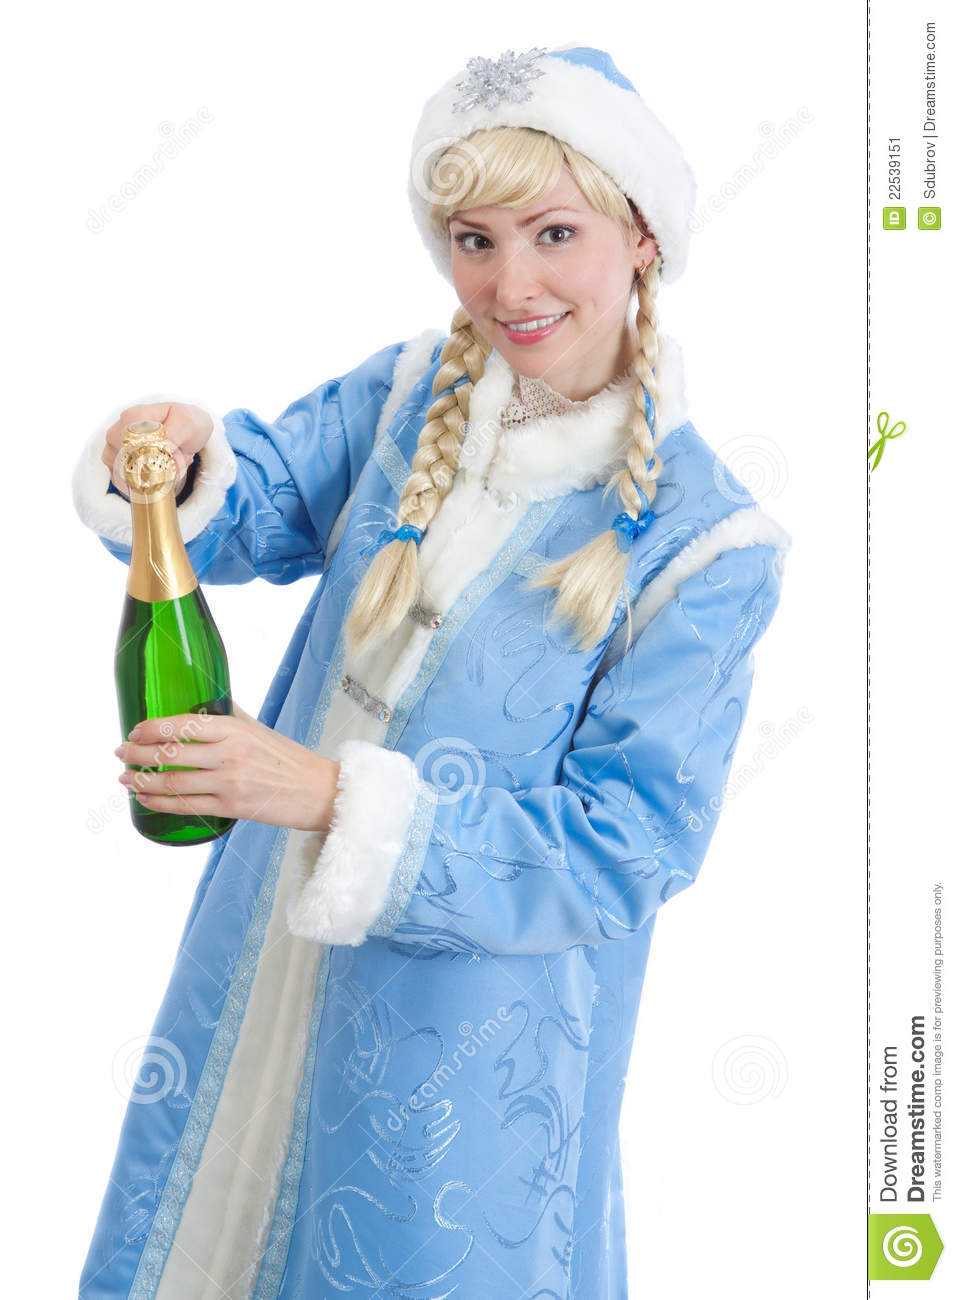 Girl Dressed In Russian Christmas Costume Stock Image Image Of Happiness Drink 22539151,Crochet Elephant Afghan Pattern Free